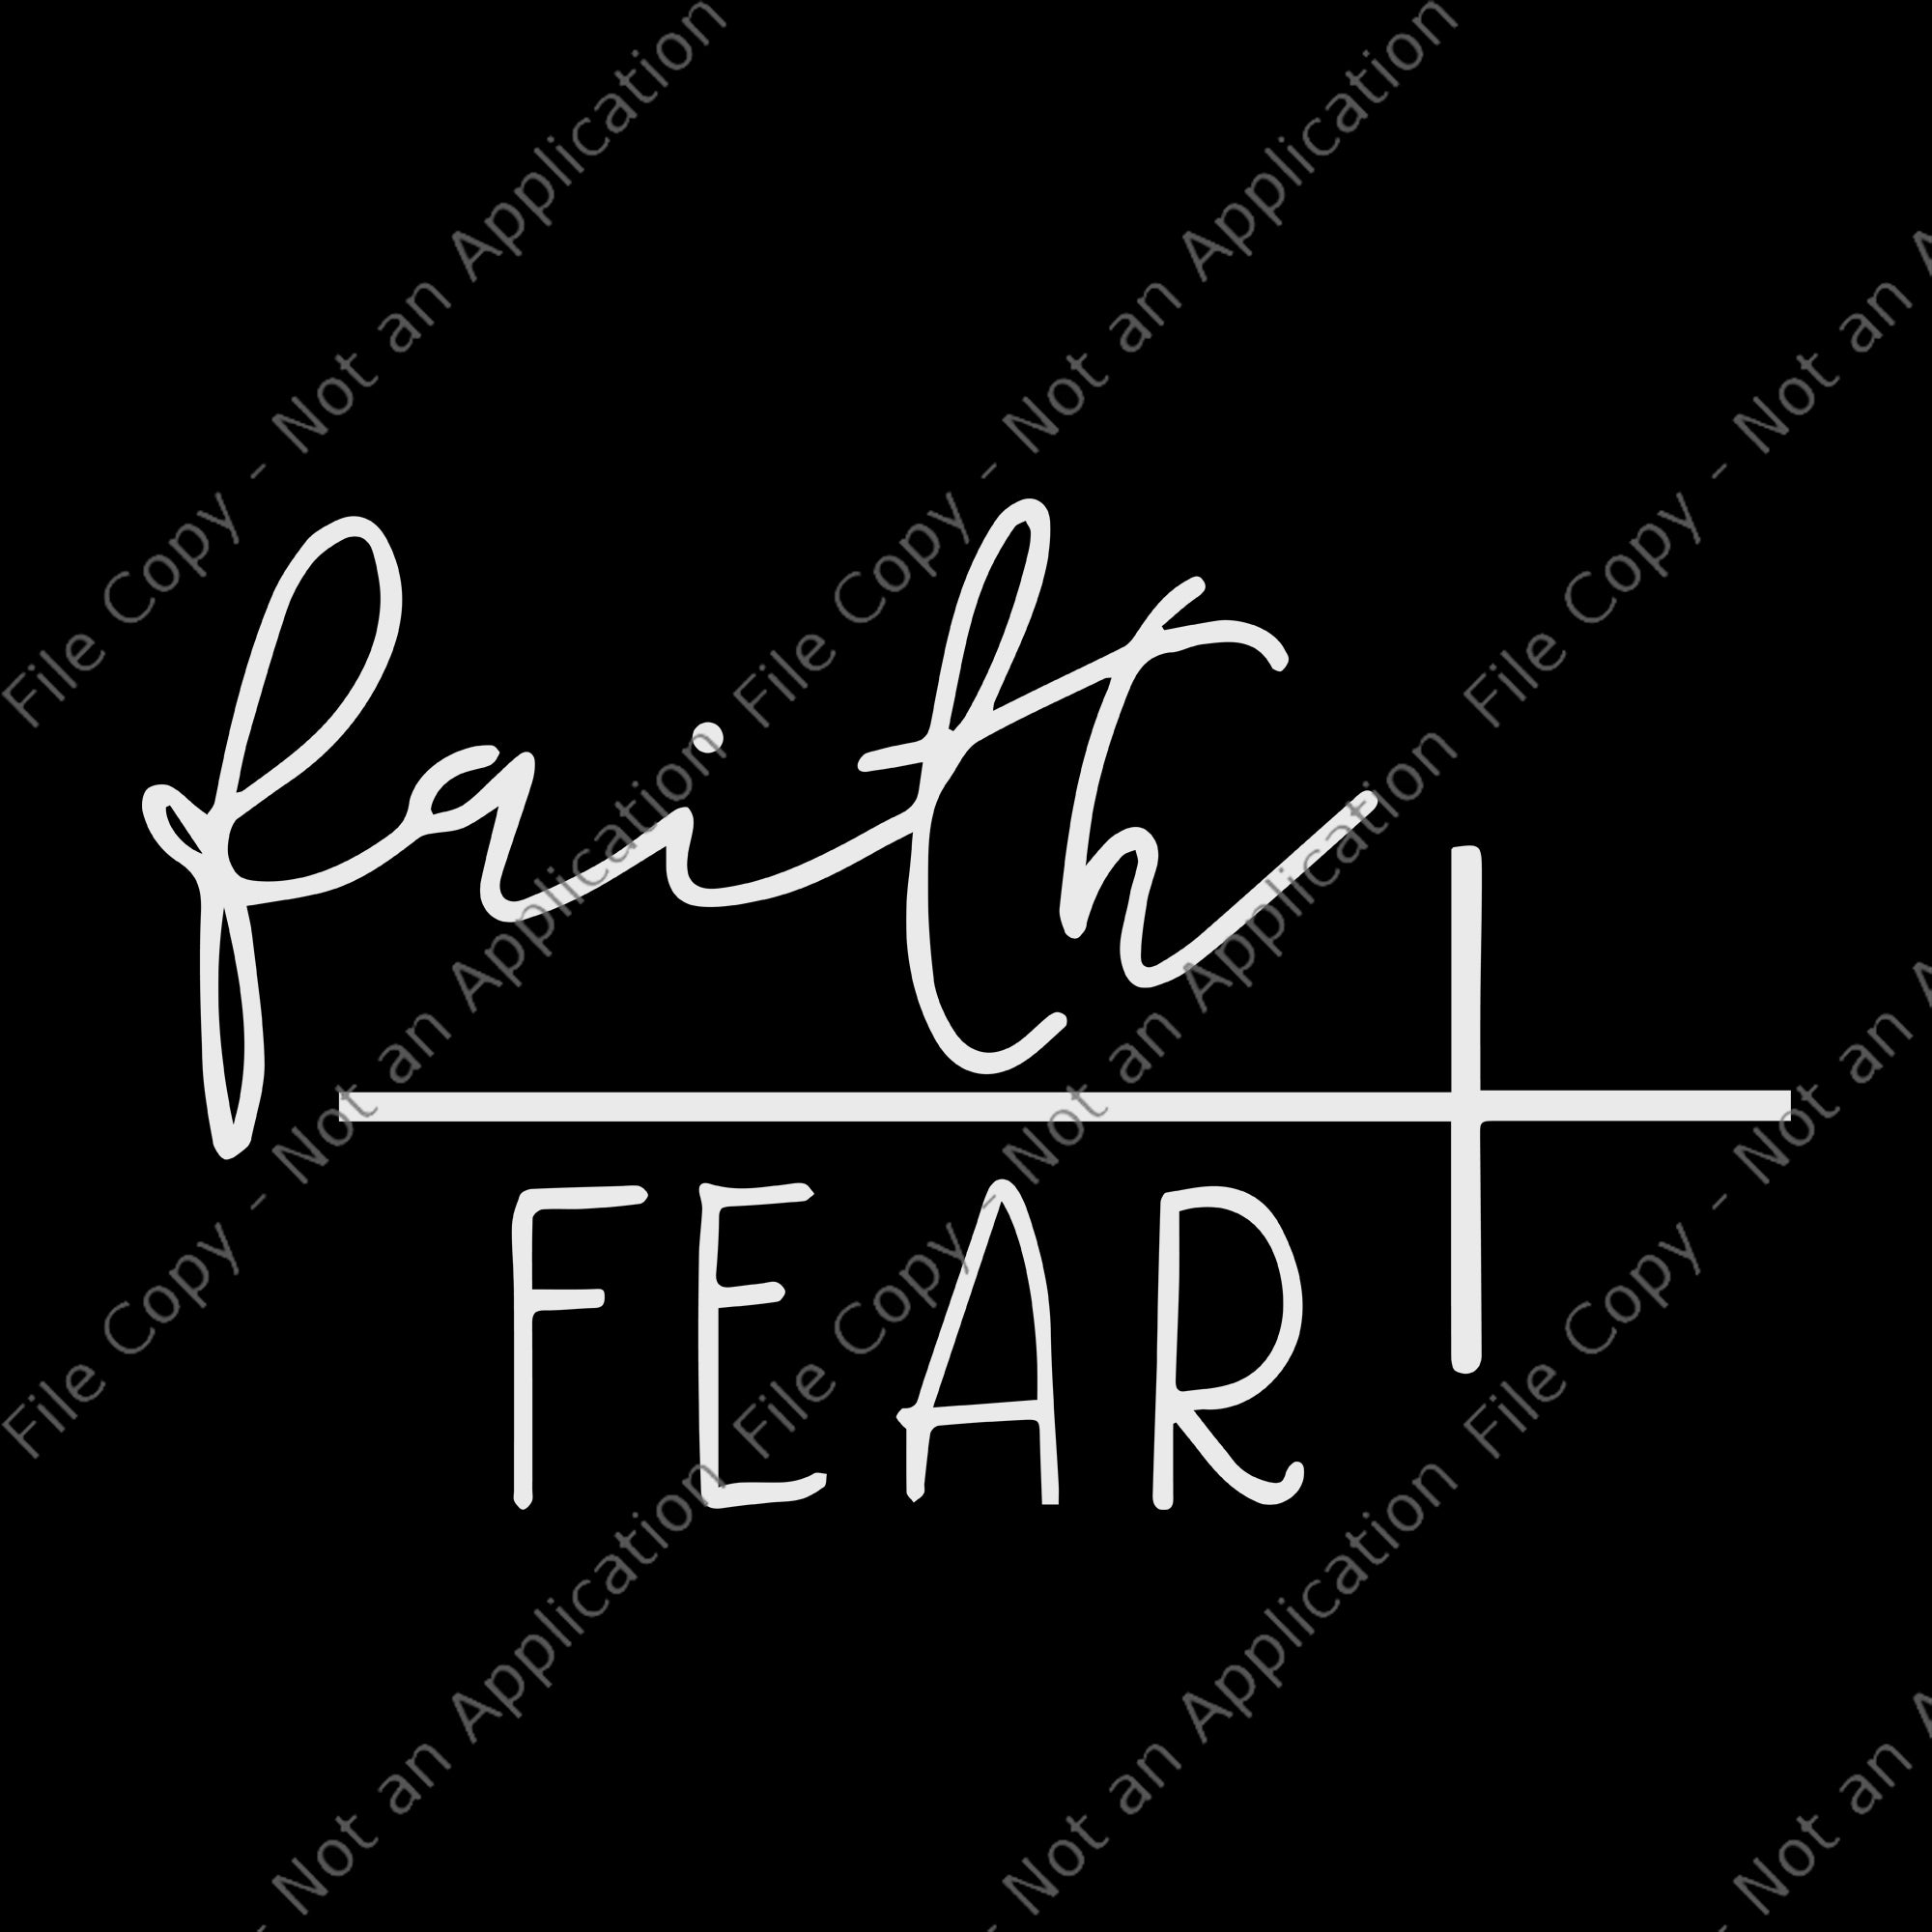 Faith over fear, Faith over fear png, Faith over fear svg, Faith SVG, fantasysvg, jesus svg, Religion svg, religious svg, svg faith over fear